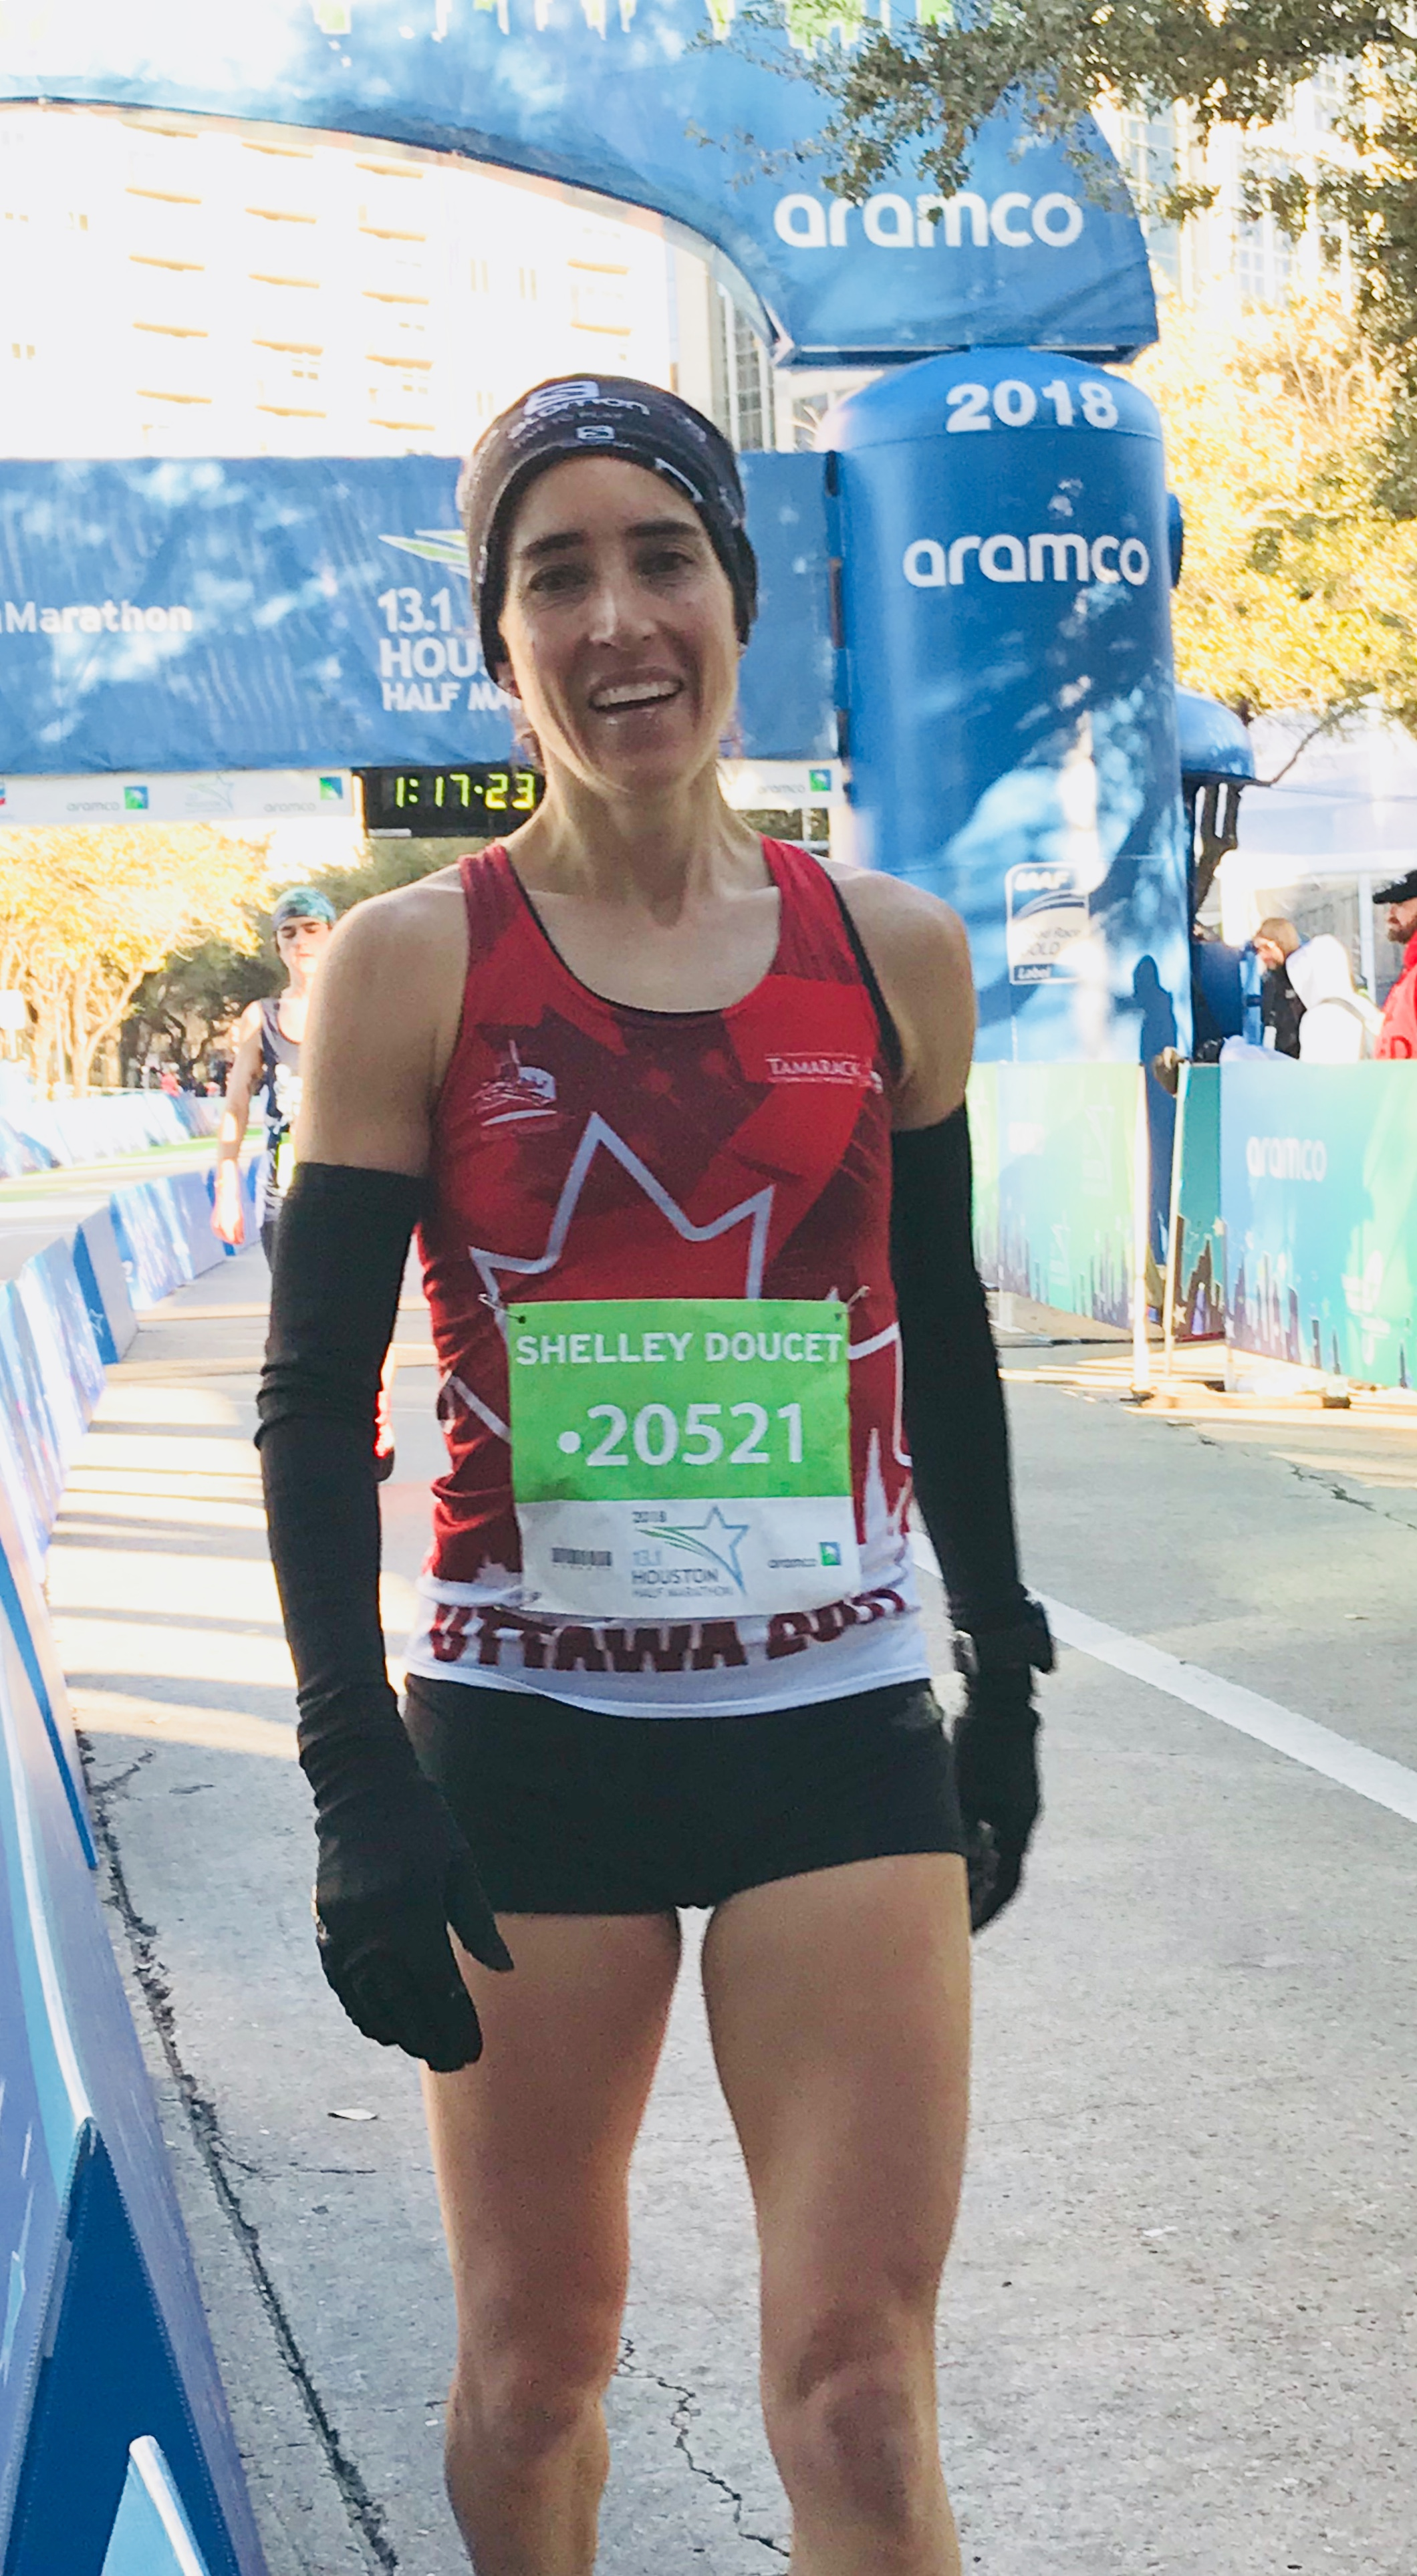 Finish of the Houston Half, New PB 1:17:07 and NB Provincial Record!